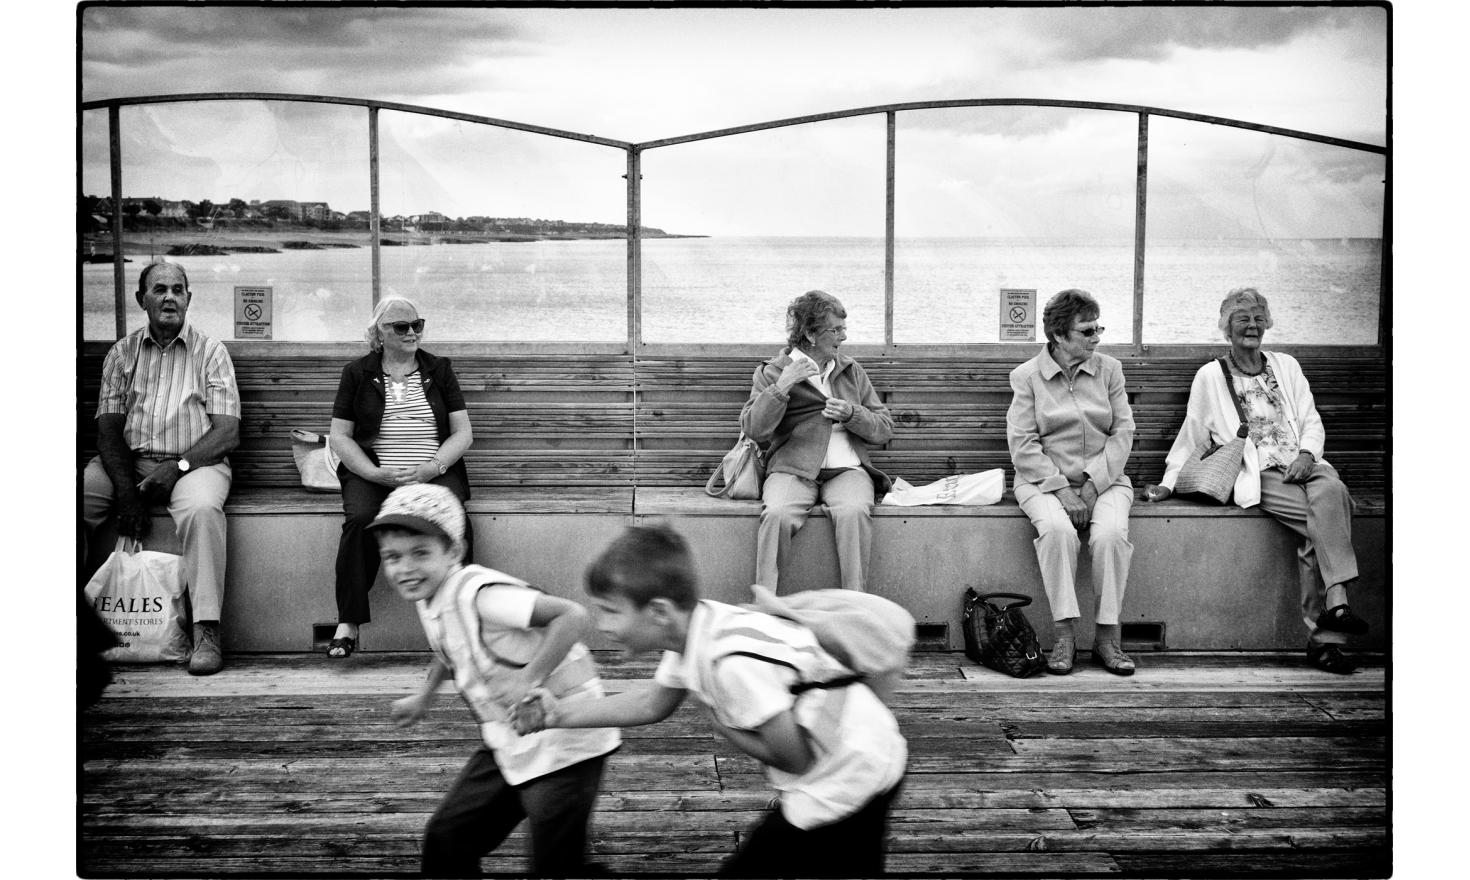 The pier. There are a lot of retired people living in Clacton. Housing and rent are cheap. Clacton on sea, England. July 2016